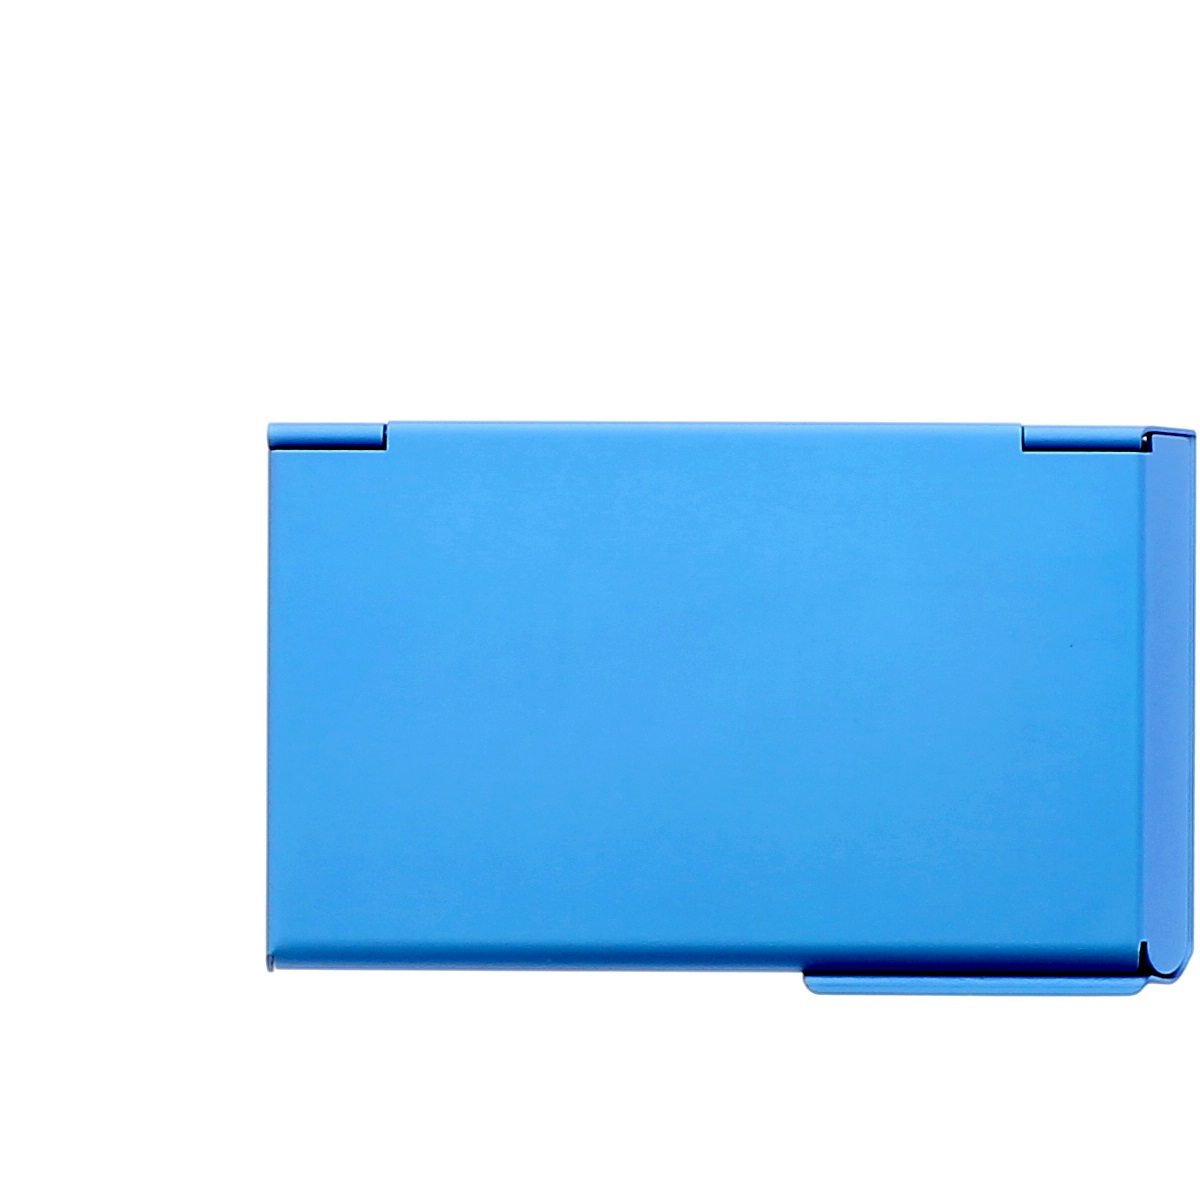 Ogon aluminum business card holder one touch blue wallets online ogon aluminum business card holder one touch blue magicingreecefo Choice Image